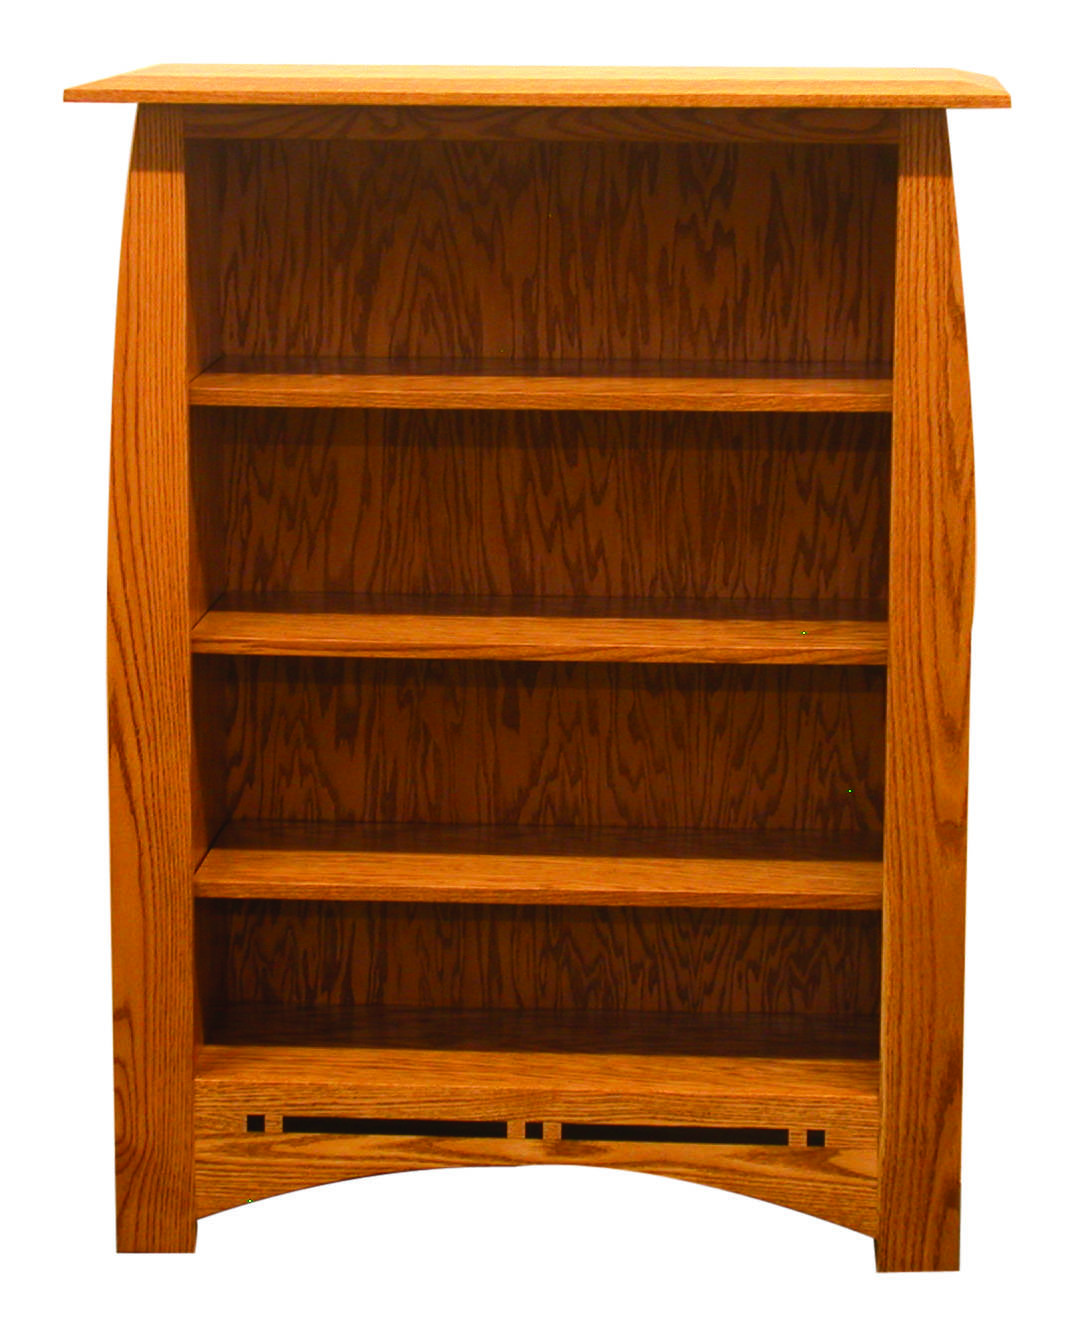 Dining Room Furniture Rochester Ny: Rochester NY Bookcases